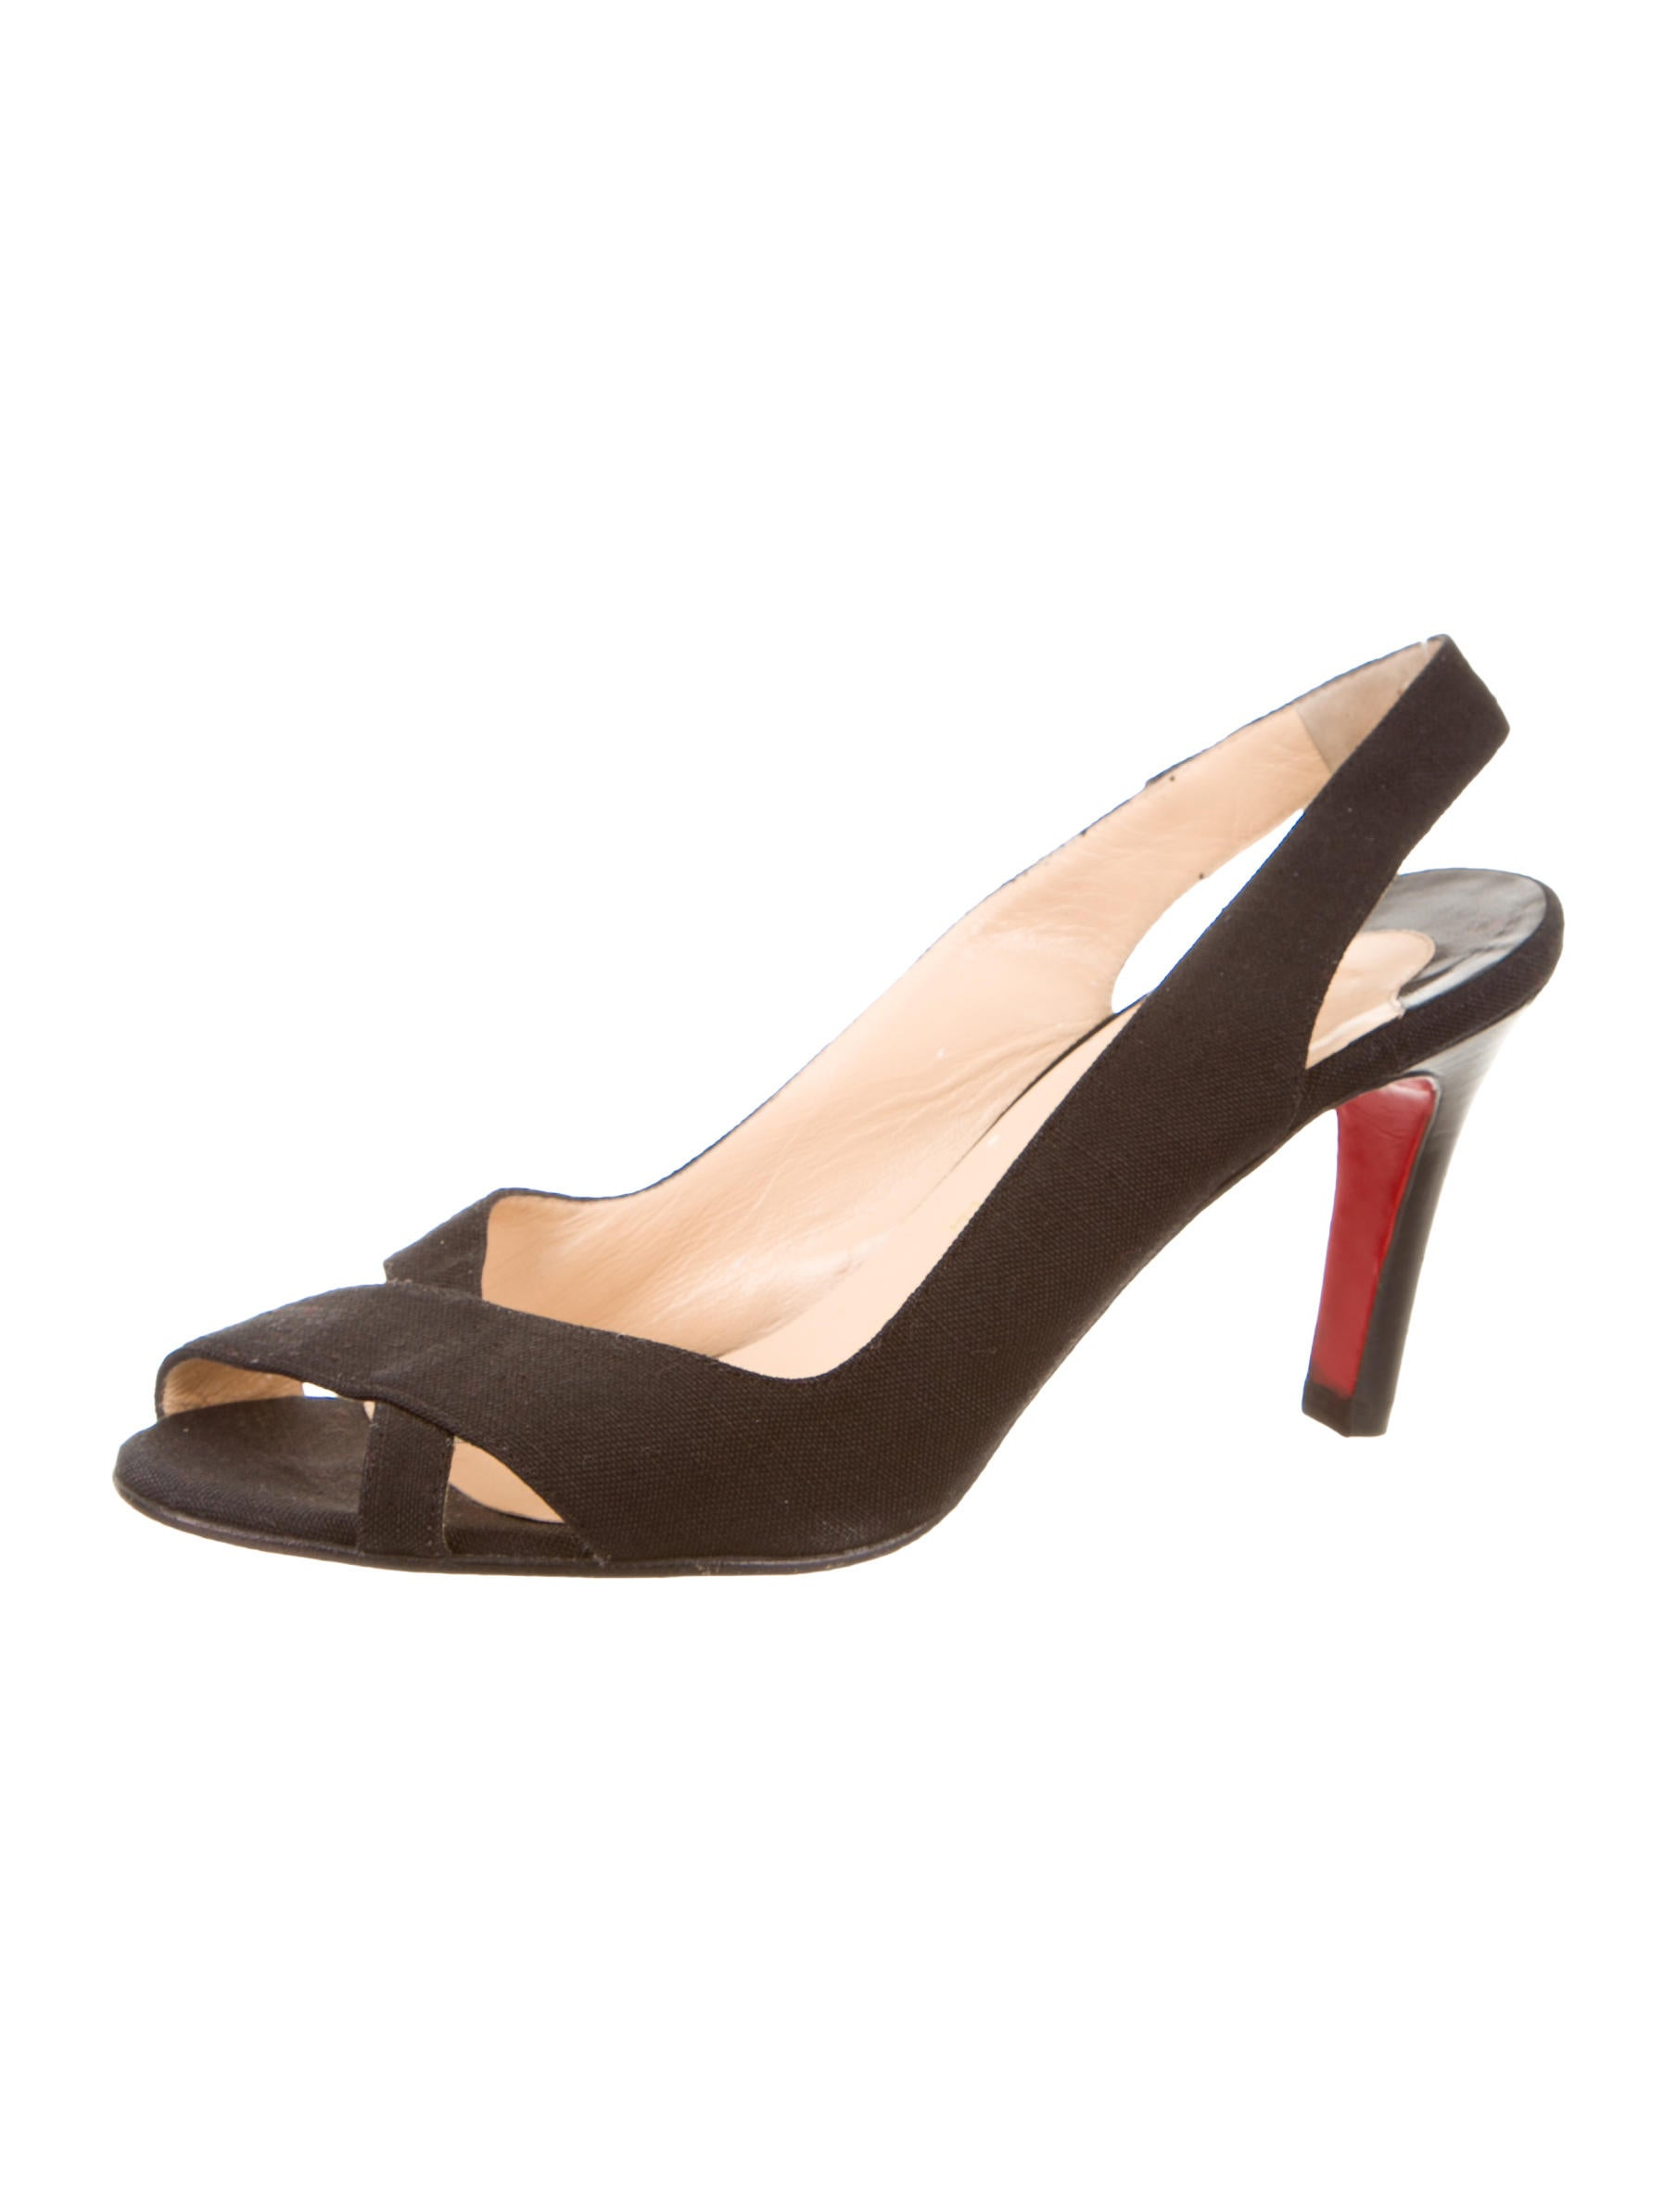 knock off mens shoes - Christian Louboutin Woven Slingback Sandals - Shoes - CHT43775 ...